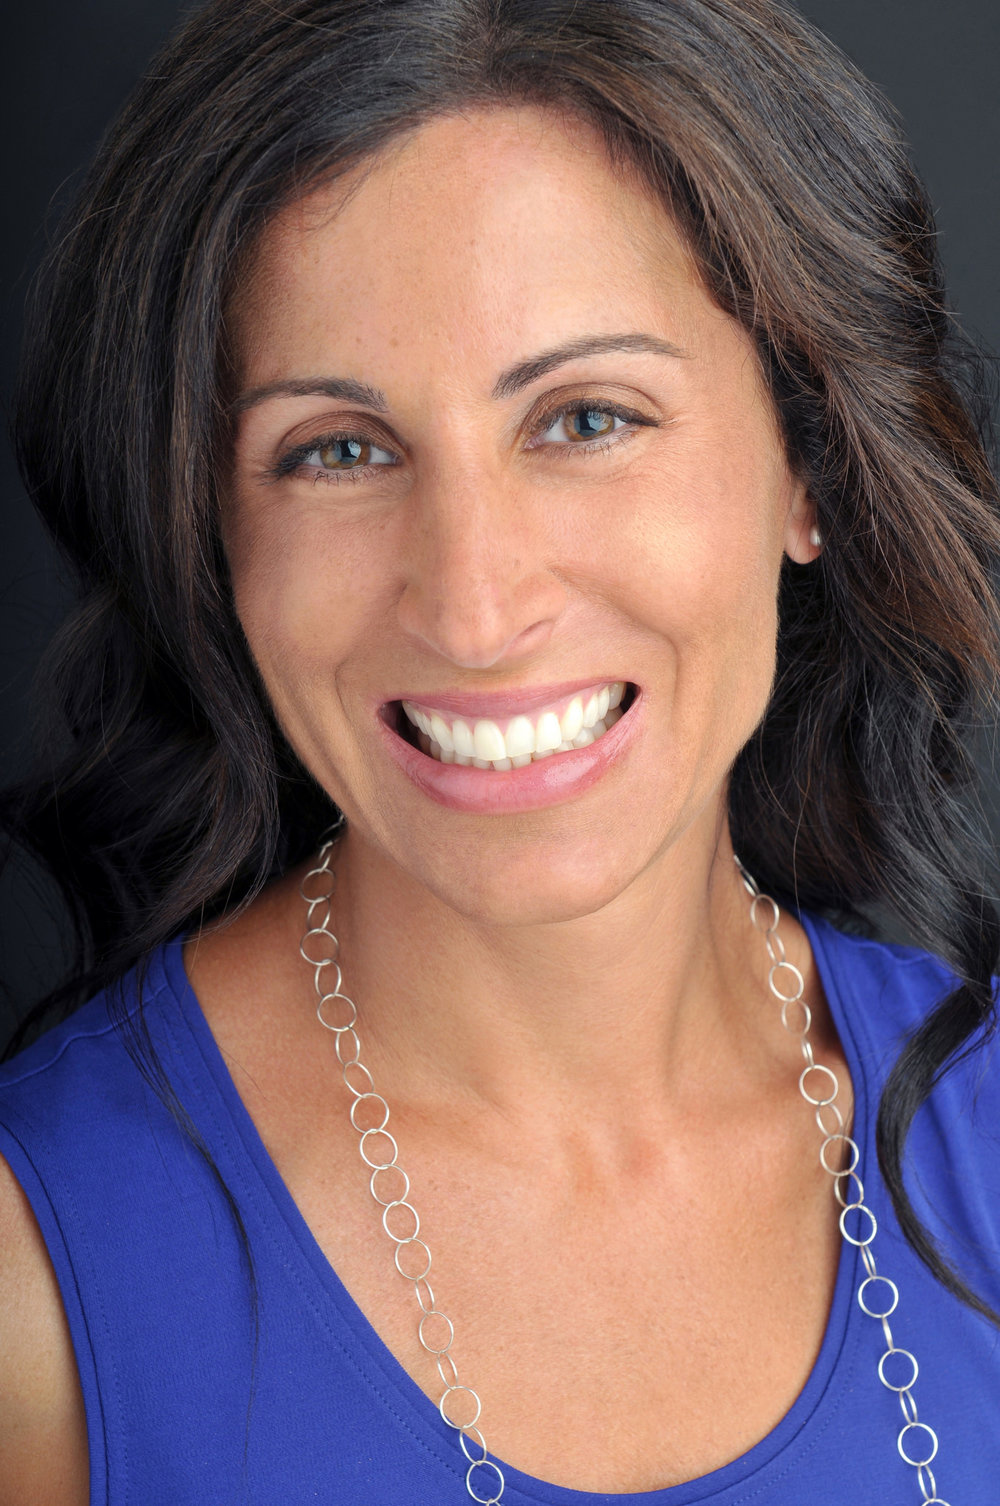 Author Photo - Lisa Genova credit to Greg Mentzer.jpg